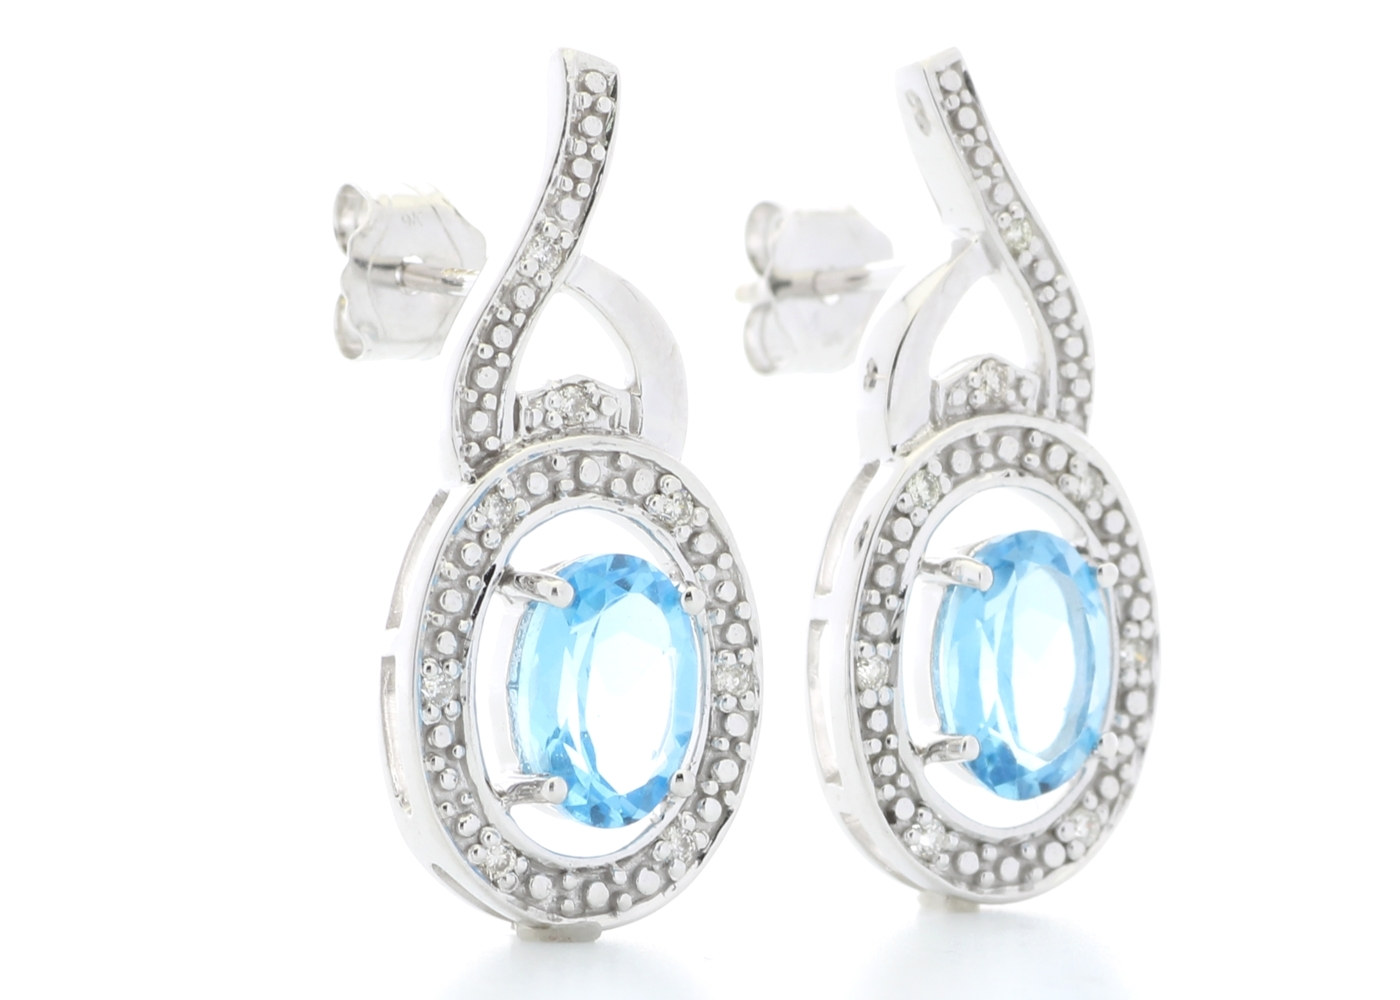 9ct White Gold Diamond And Blue Topaz Earring - Image 4 of 4